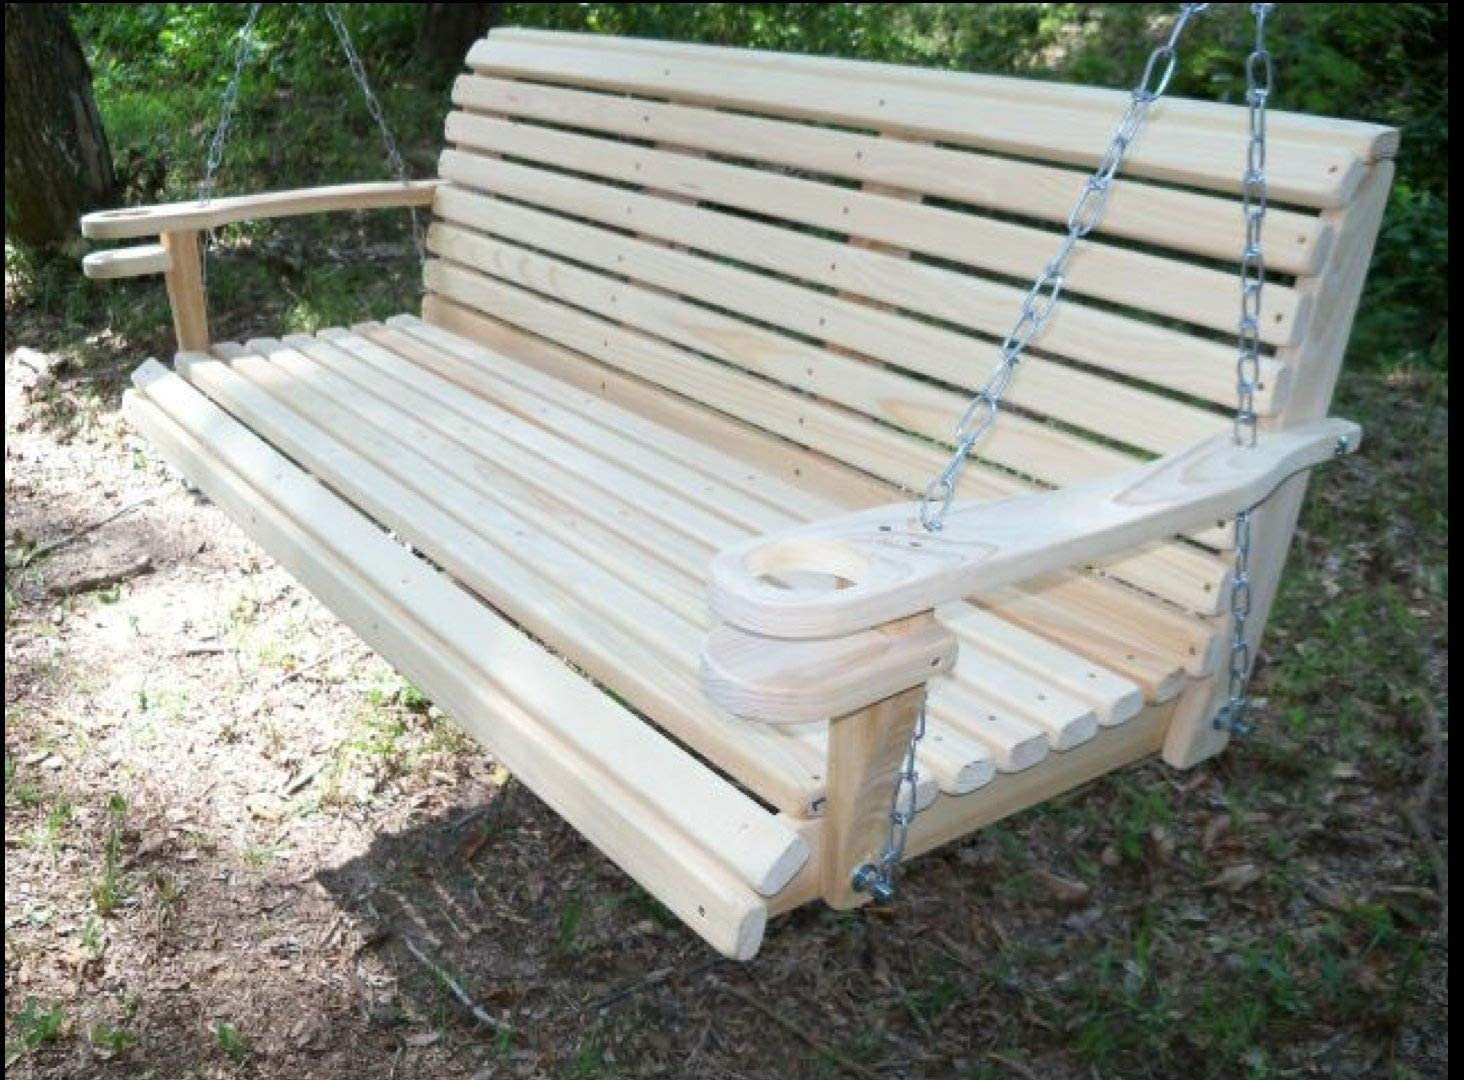 5 Ft USA Made Cypress Roll Back Porch Swing with Swing-mate Comfort Springs and Cup Holder Arm and Stainless Steel Hardware Upgrade